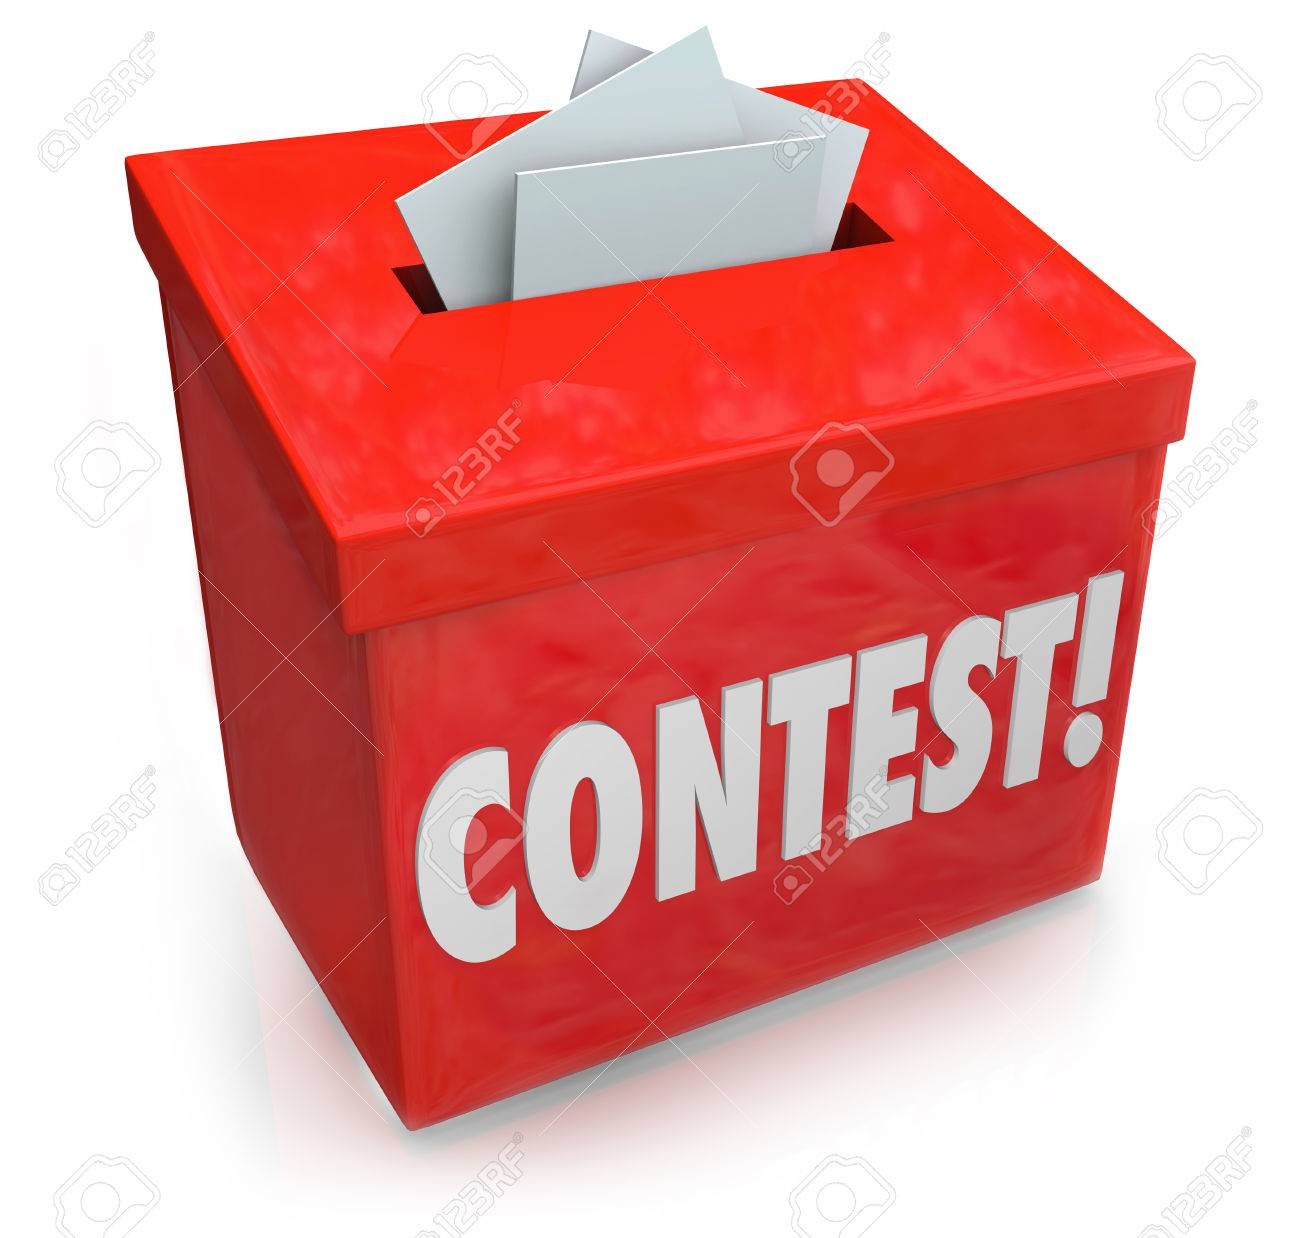 Contest word on a 3d red collection box to enter your entry form and compete to win a prize, award or jackpot in a random drawing - 26955076